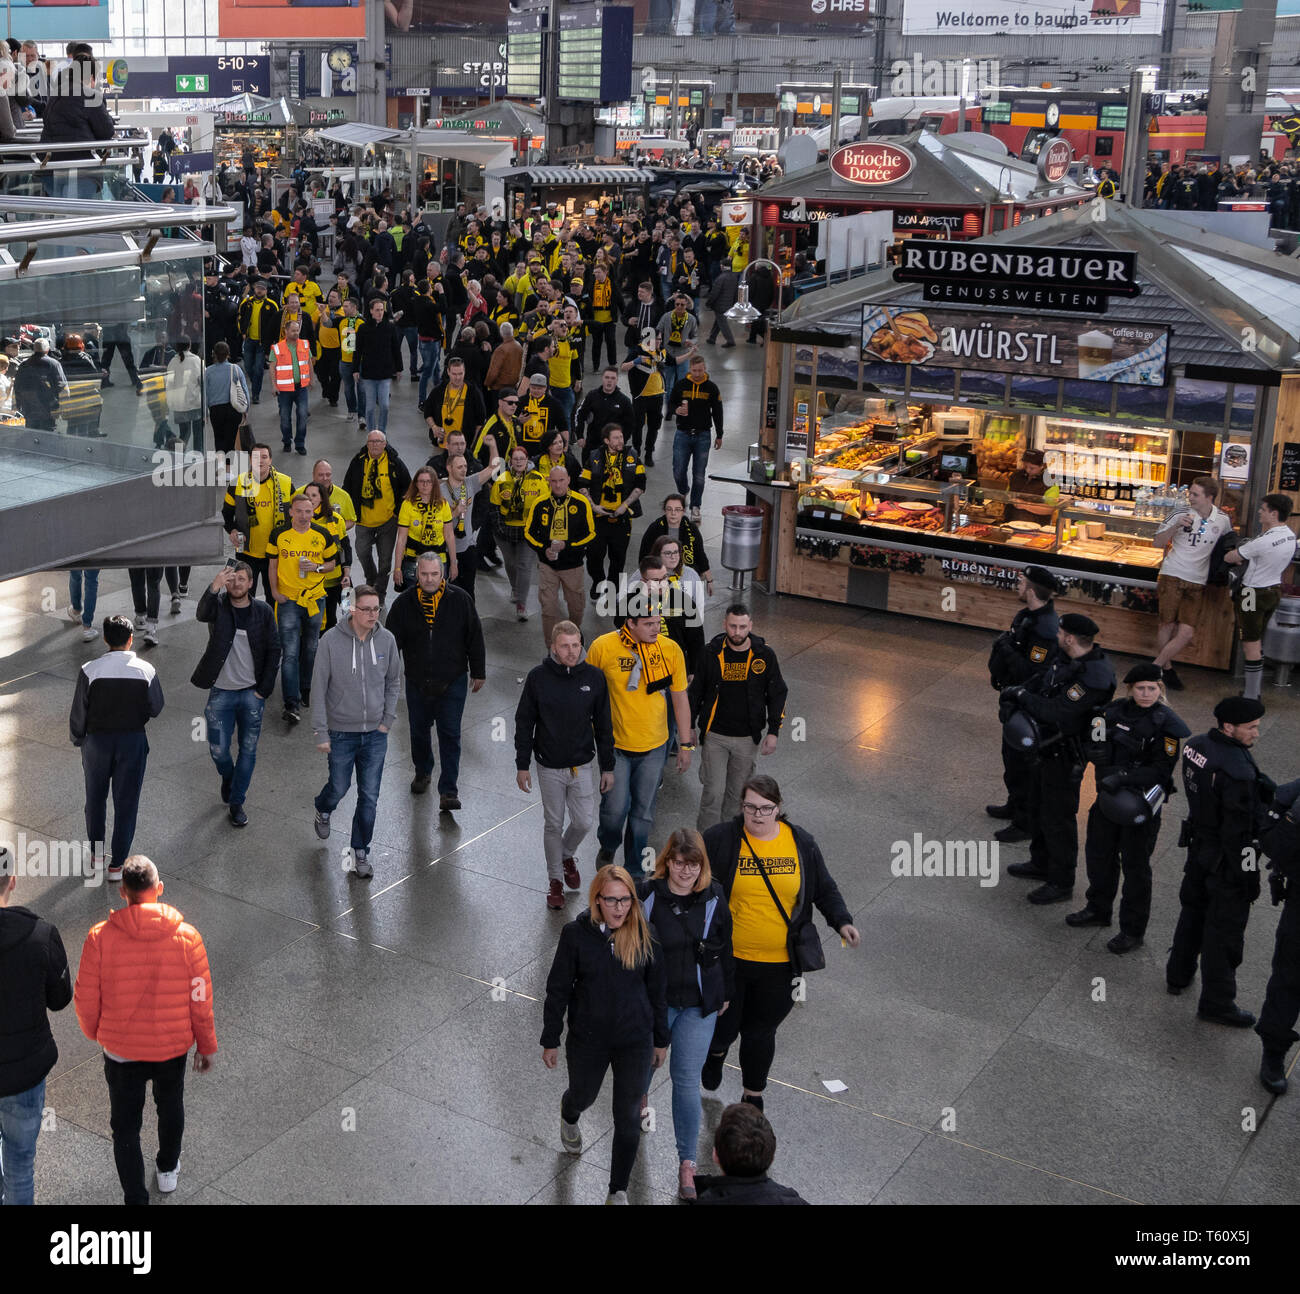 CENTRAL STATIONS, MUNICH, APRIL 6, 2019: bvb fans on the way to the soccer game fc bayern munich vs bvb Stock Photo